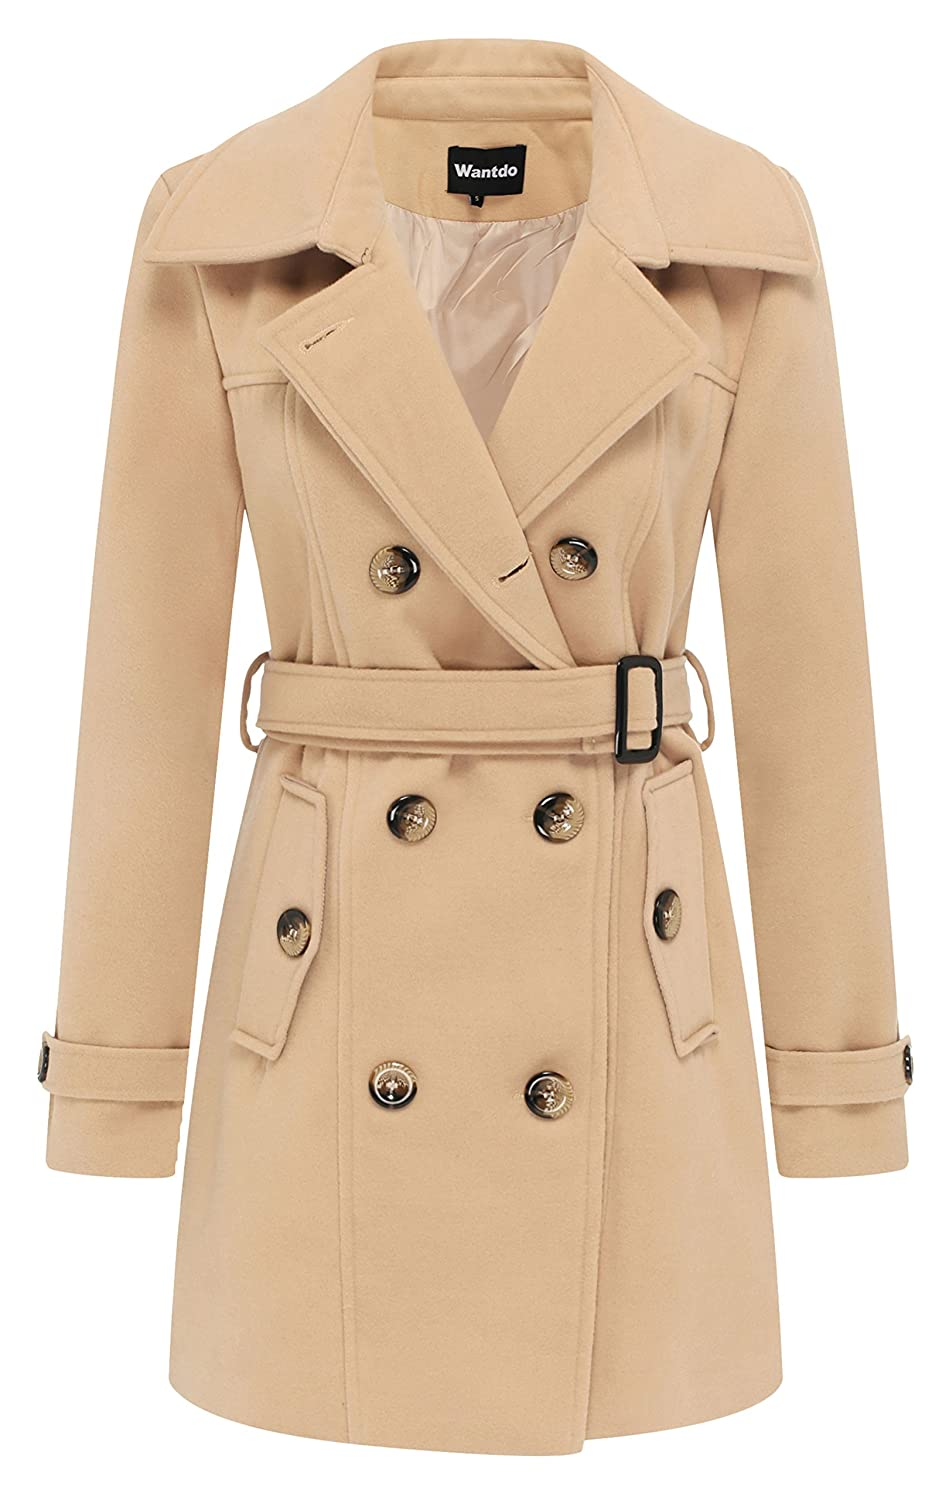 Wantdo Women's Double Breasted Pea Coat with Belt WT3357